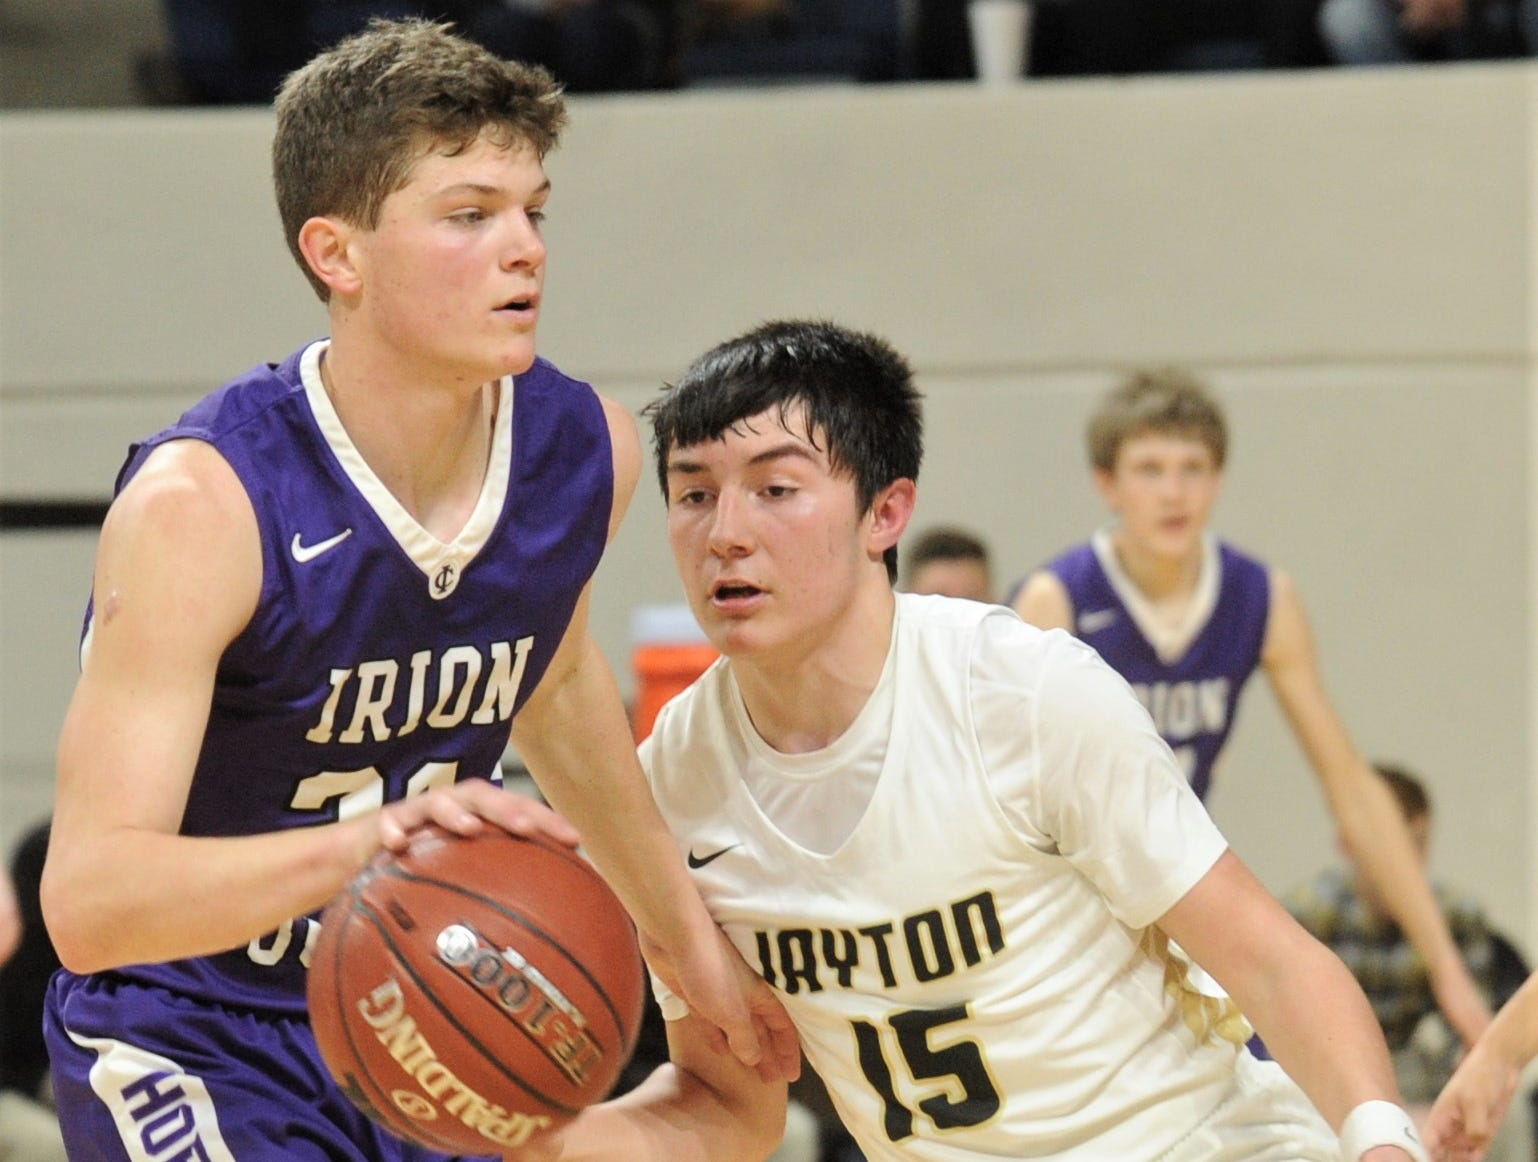 Jayton's Pecos Smith, right, defends against a Irion County player. The Jaybirds beat Irion County 47-32 in the Region II-1A championship game Saturday, March 2, 2019, at Abilene Christian's Moody Coliseum.